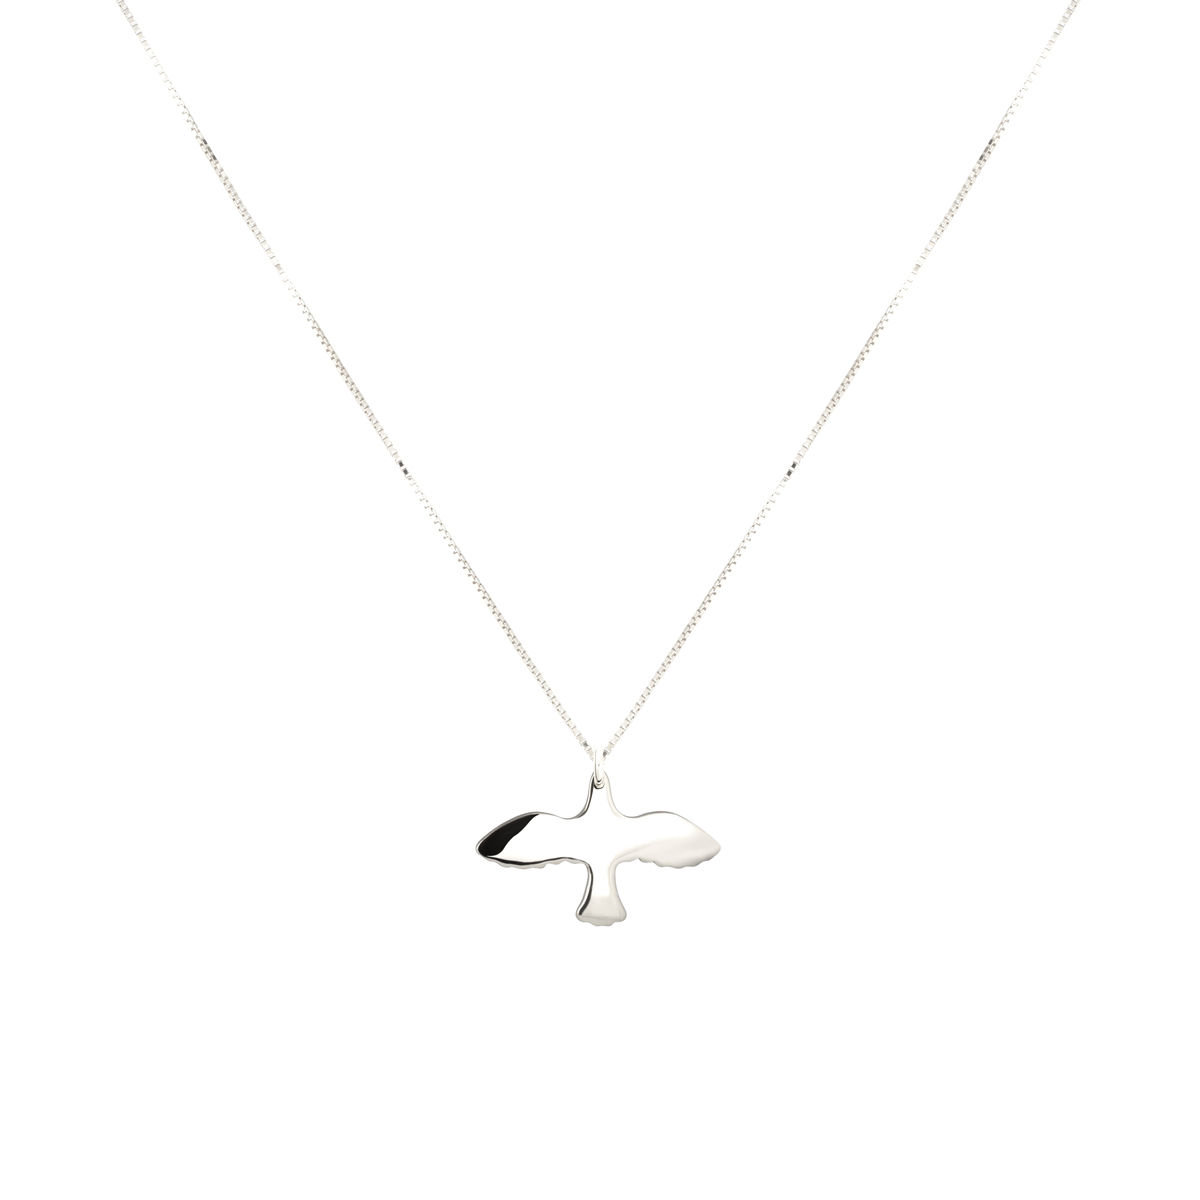 SILVER SMALL DOVE NECKLACE in the group NECKLACES at EMMA ISRAELSSON (neck030)